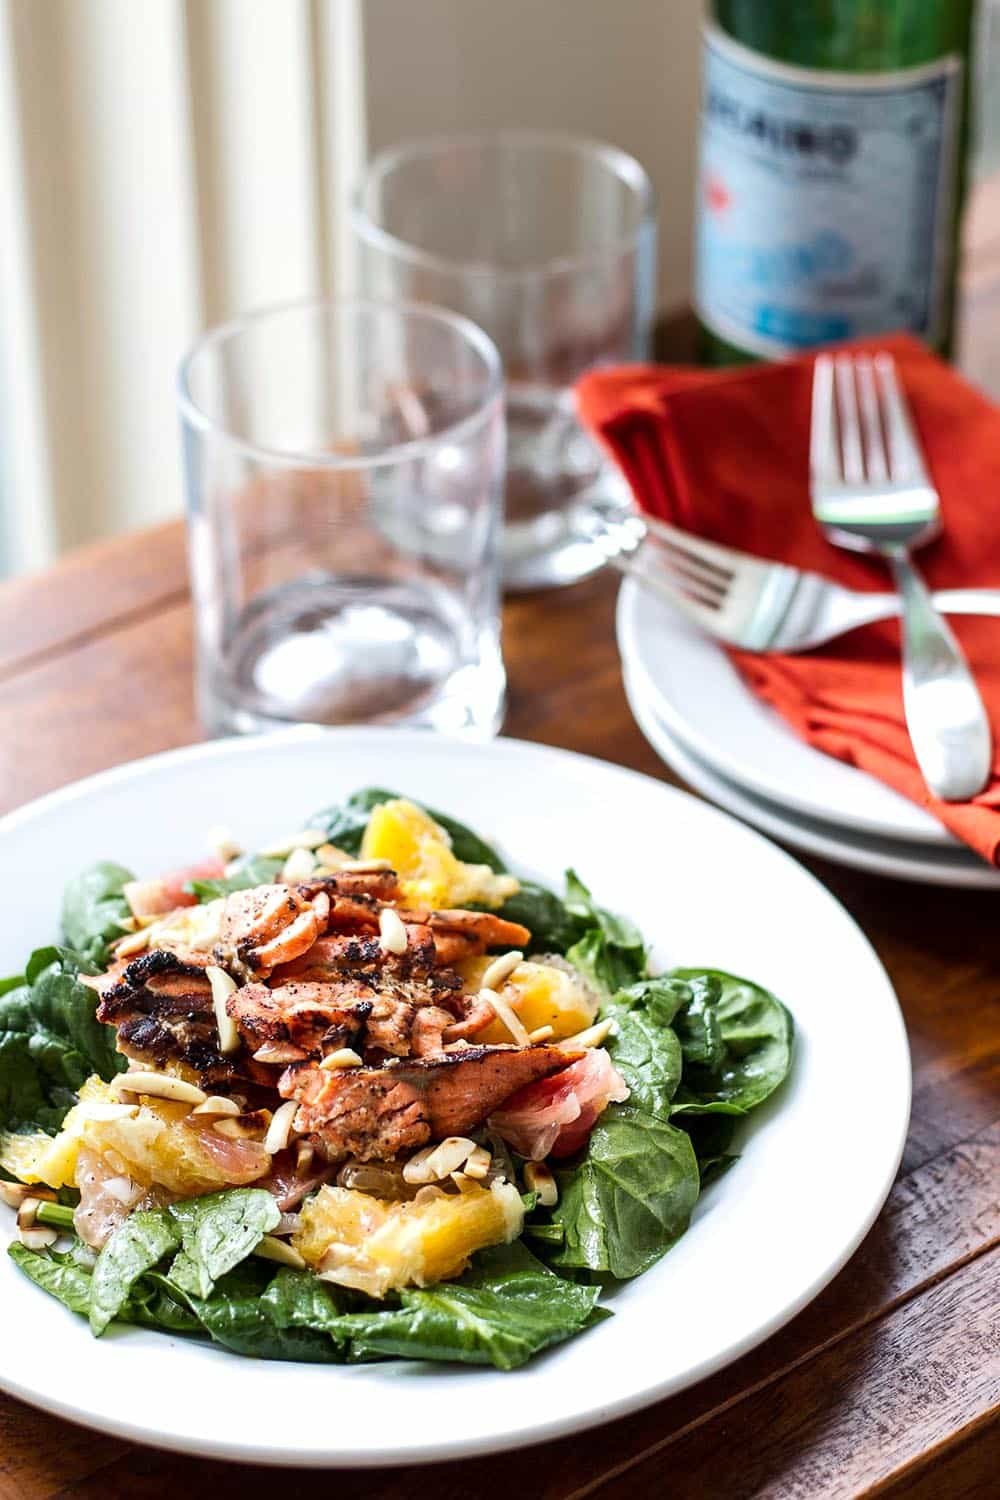 A light and refreshing salad with spinach, citrus, grilled salmon, and toasted walnuts.